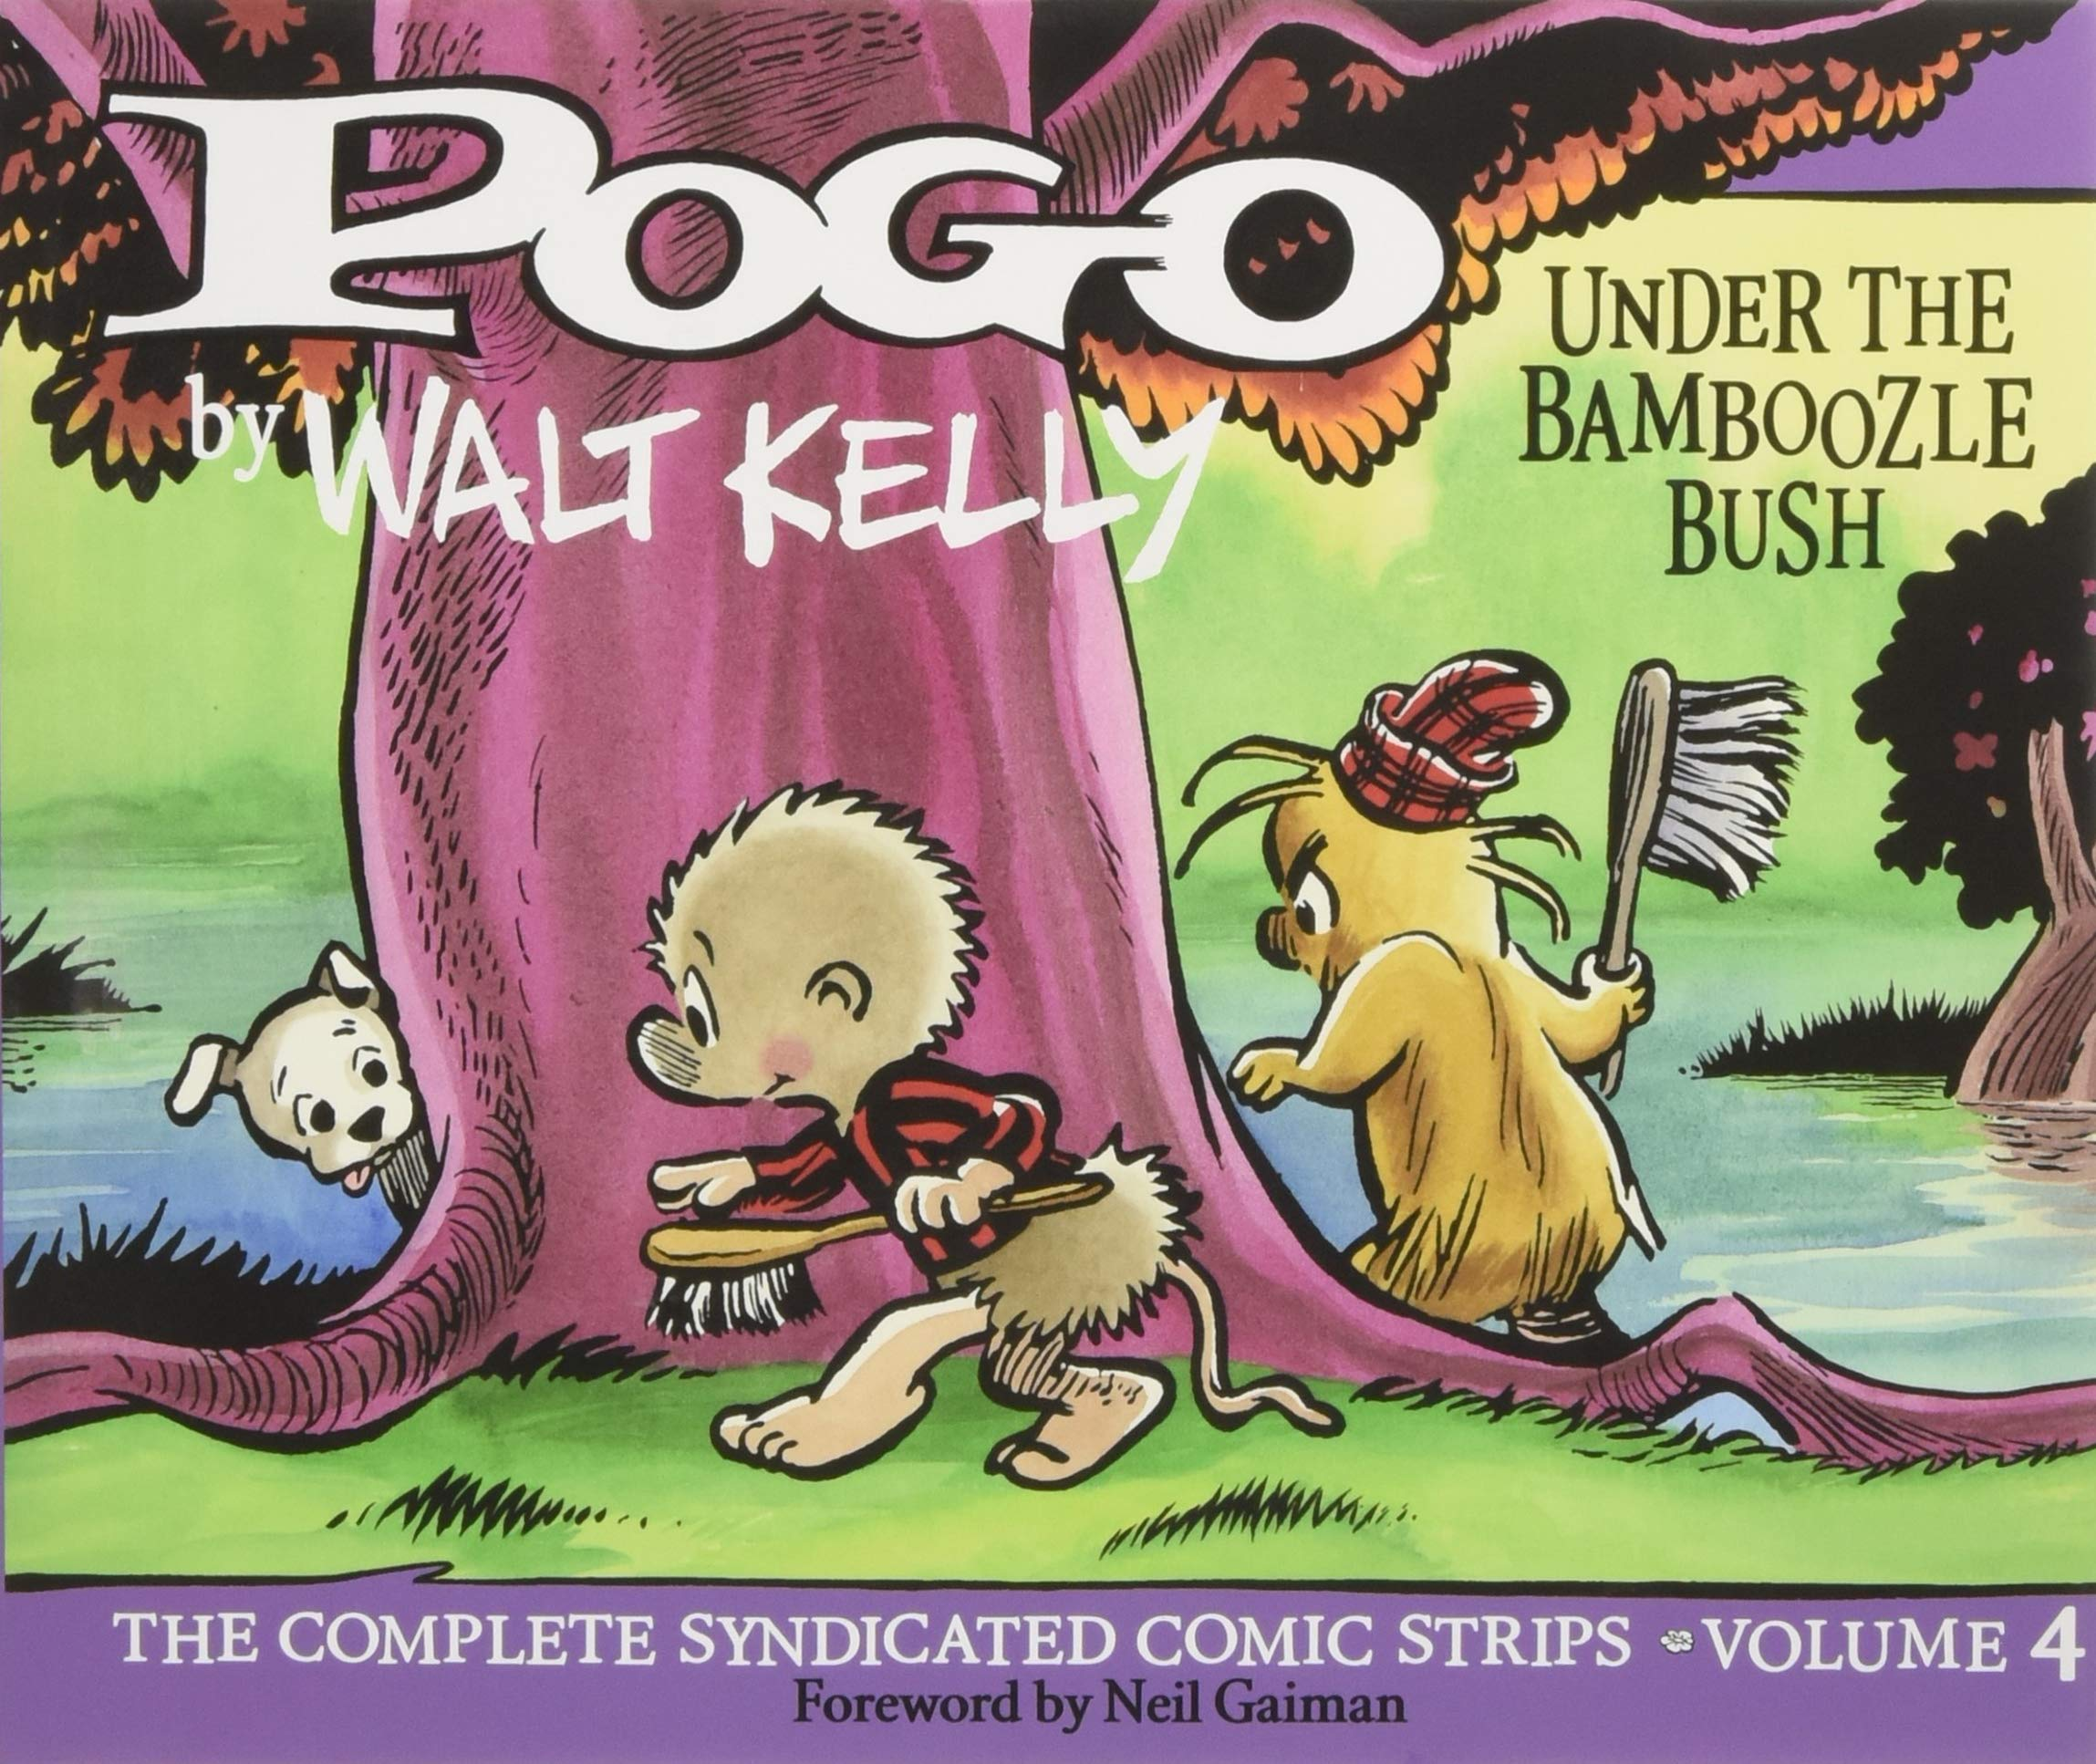 Pogo The Complete Syndicated Comic Strips: Under The Bamboozle Bush (Vol.  4) (Walt Kelly's Pogo) Hardcover – January 30, 2018